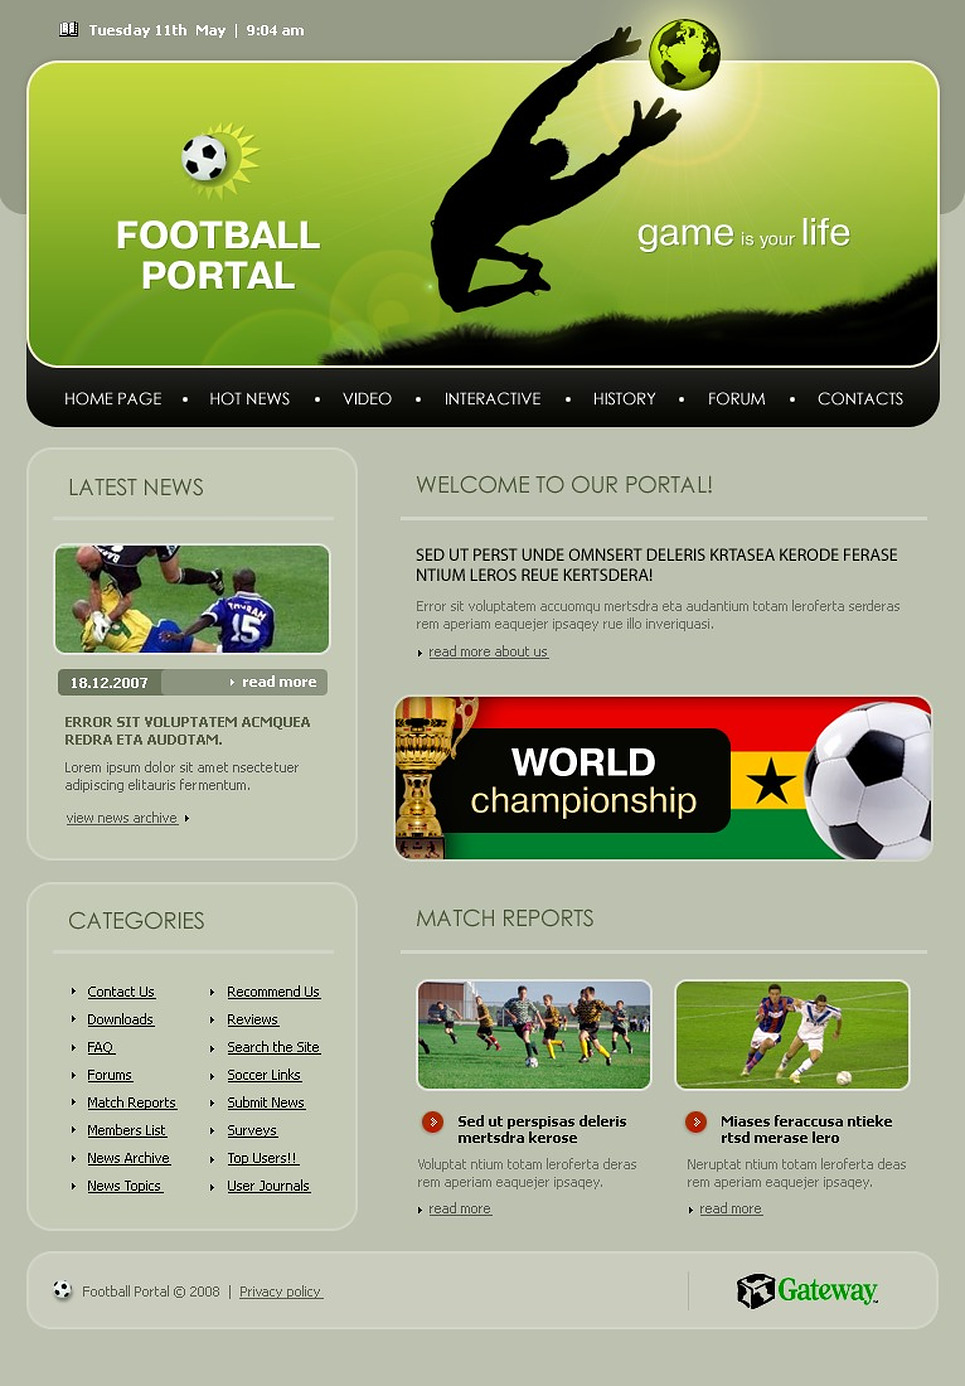 Football gambling portal casino everestpokercom online poker u14a50